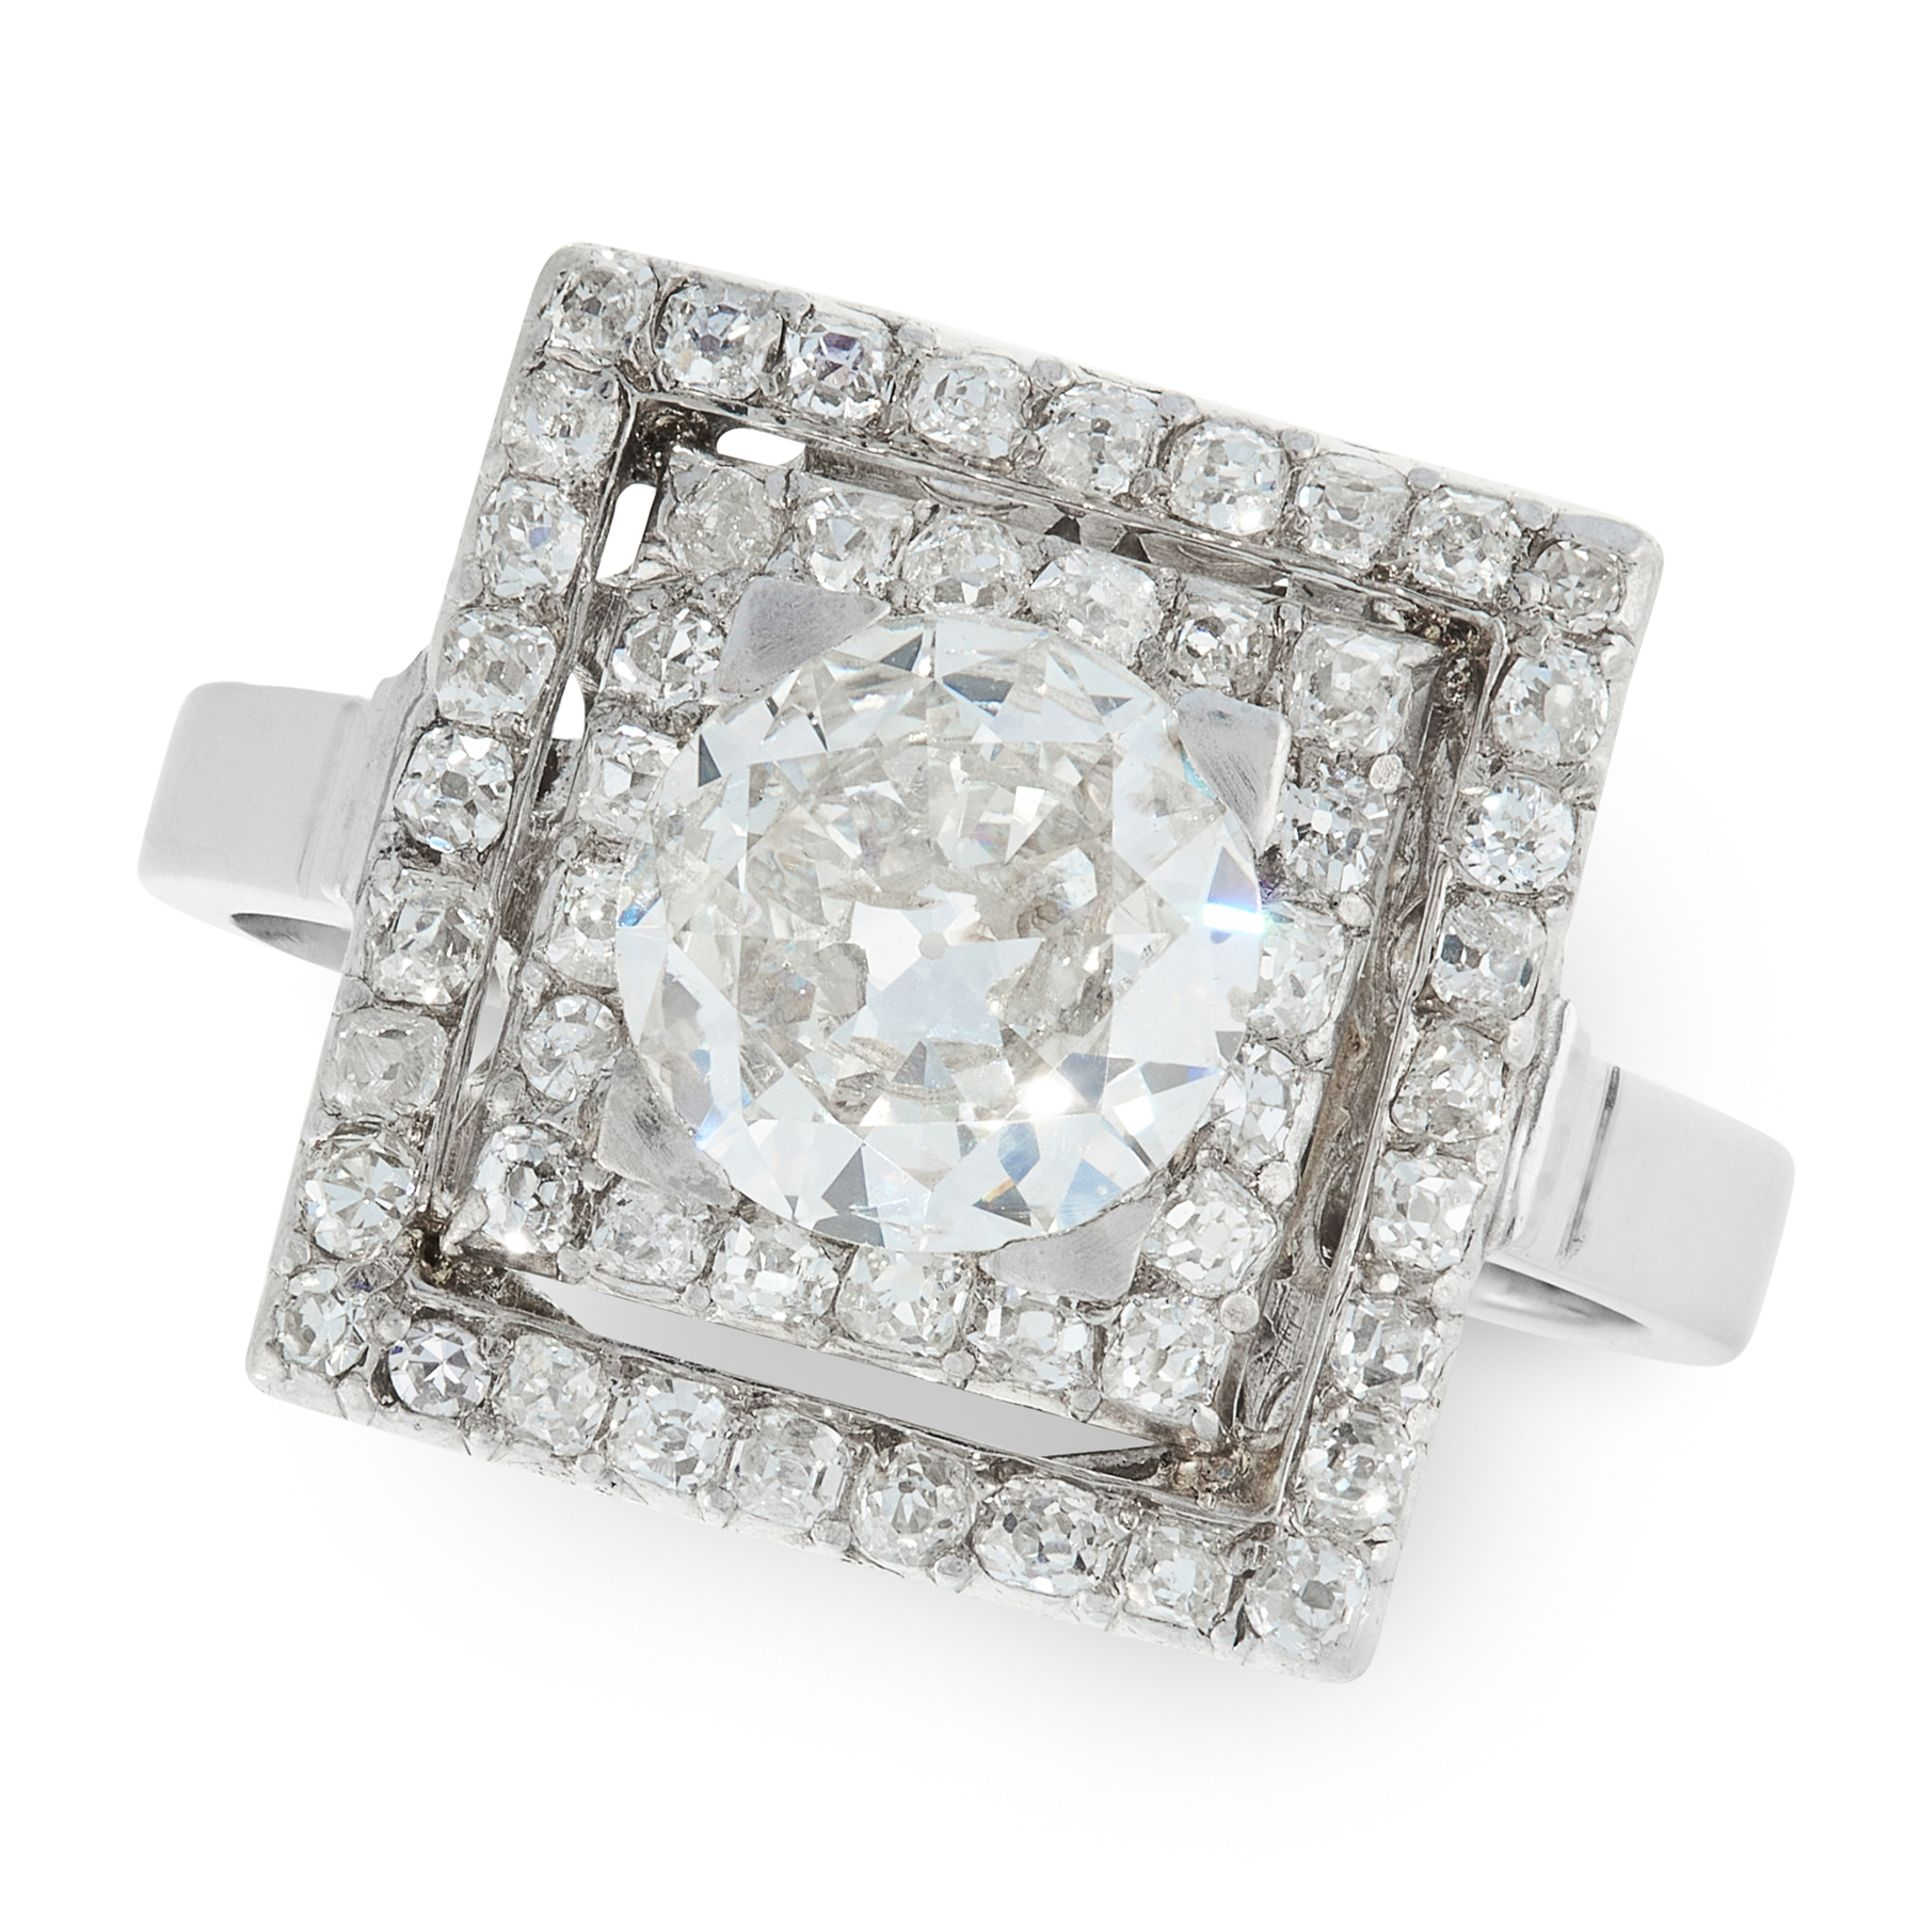 A DIAMOND DRESS RING set with a principal old cut diamond of 1.40 carats within two square